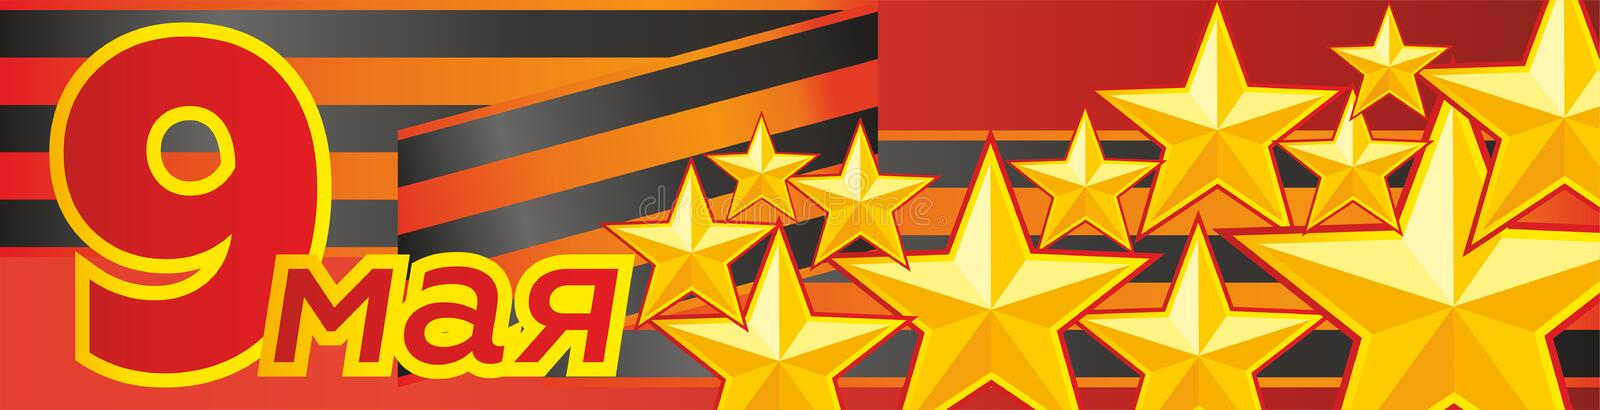 Victory day, may 9,  template for posters, announcements, greetings,  background with stars. Vector background with stars Victory day, may 9,  template for vector illustration